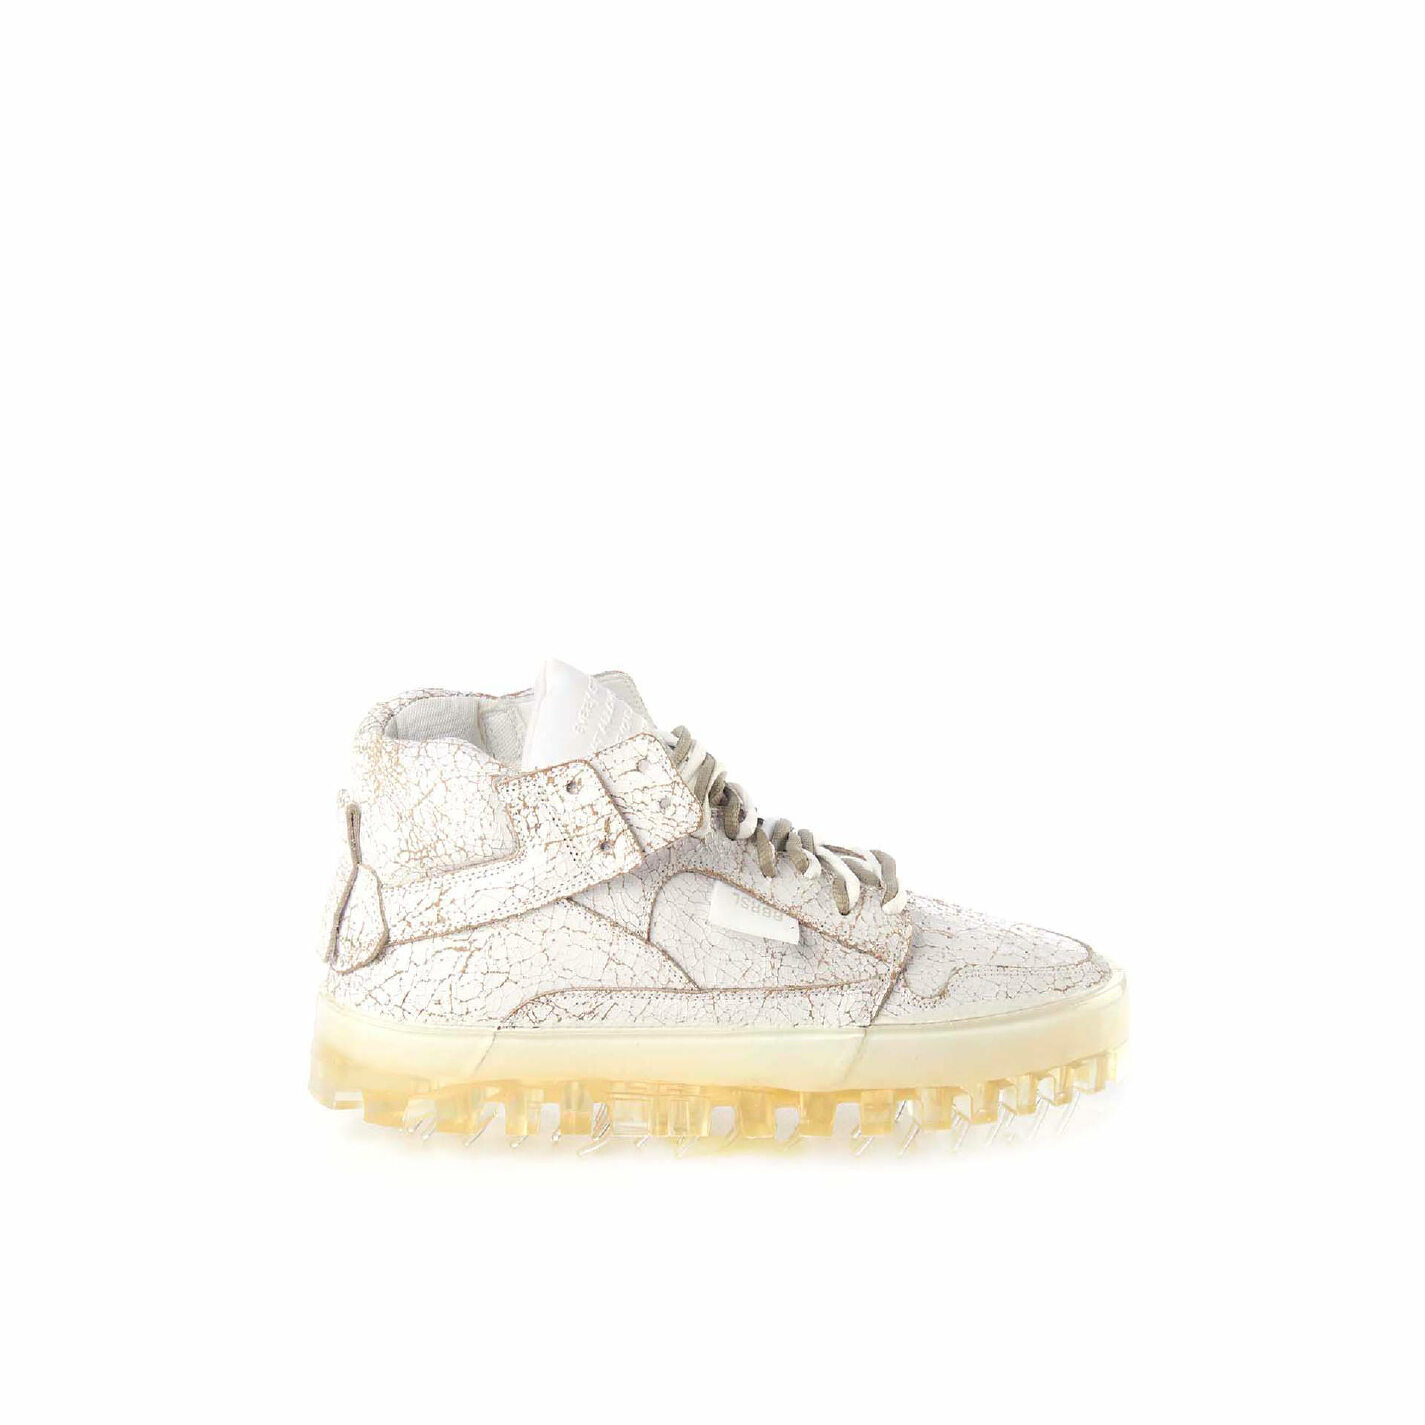 Women's BOLD cracked-effect leather trainers with see-through sole